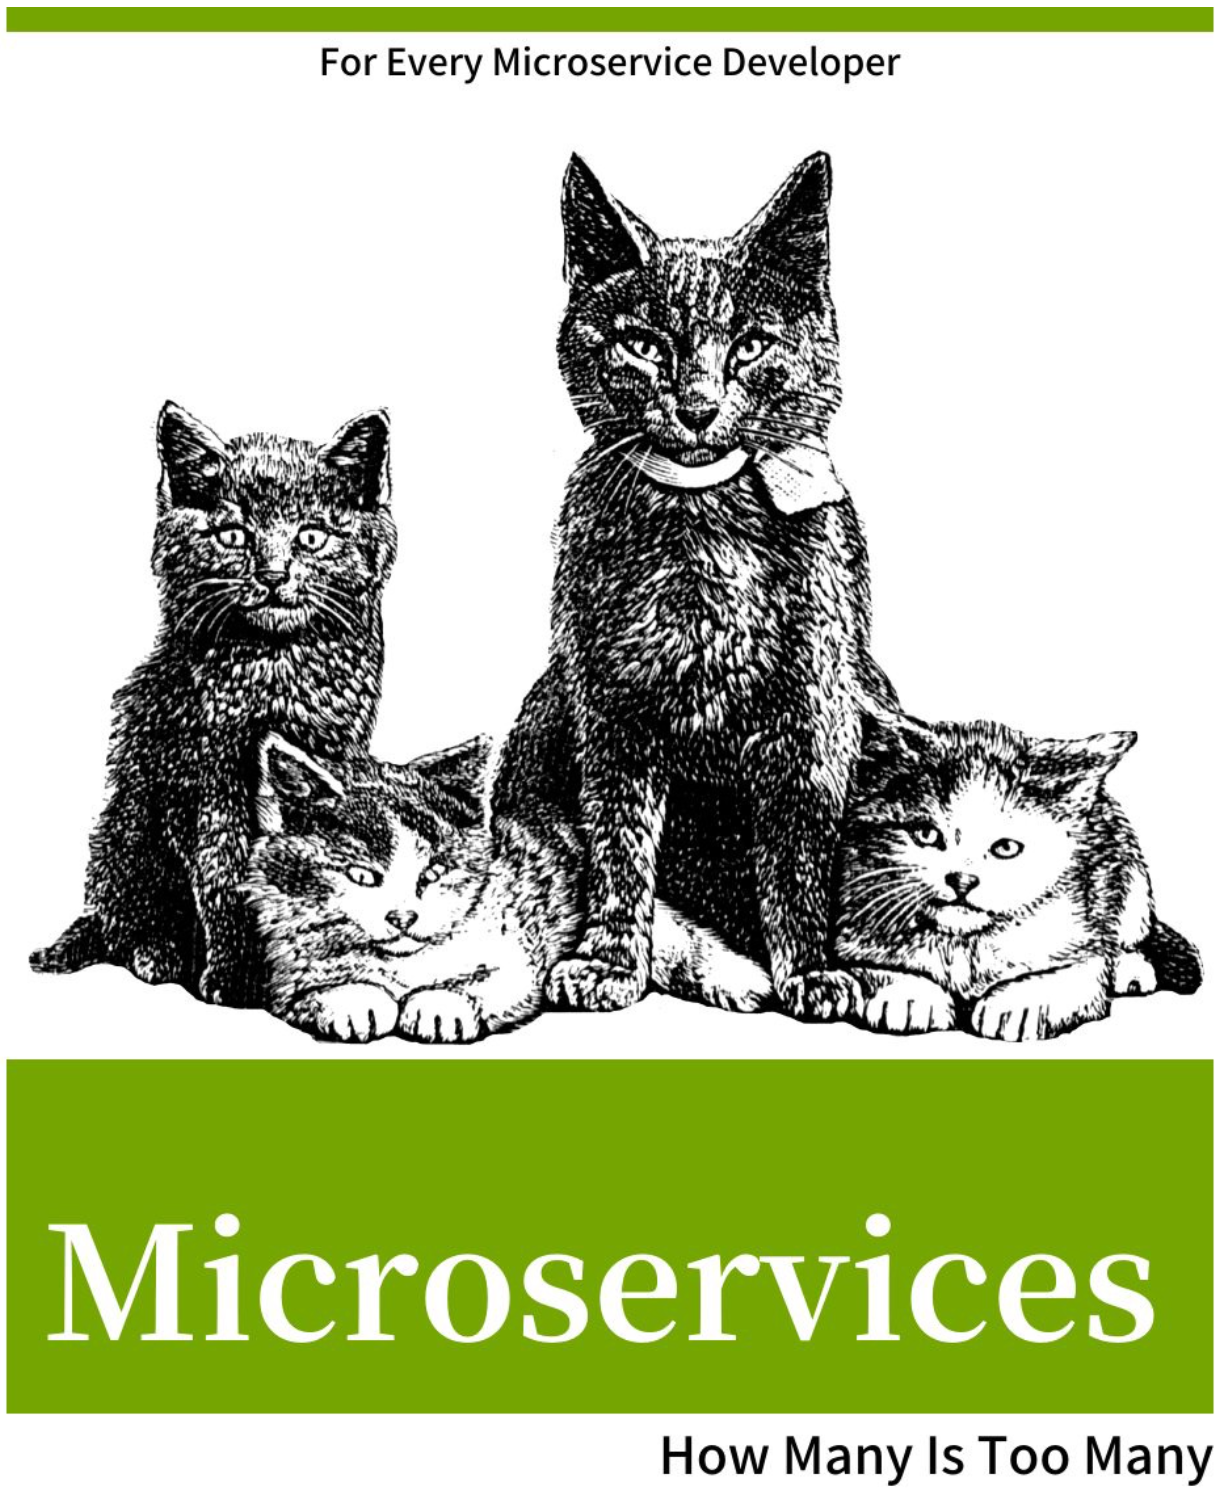 Learn the language and platform agnostic factors of designing microservices architecture.